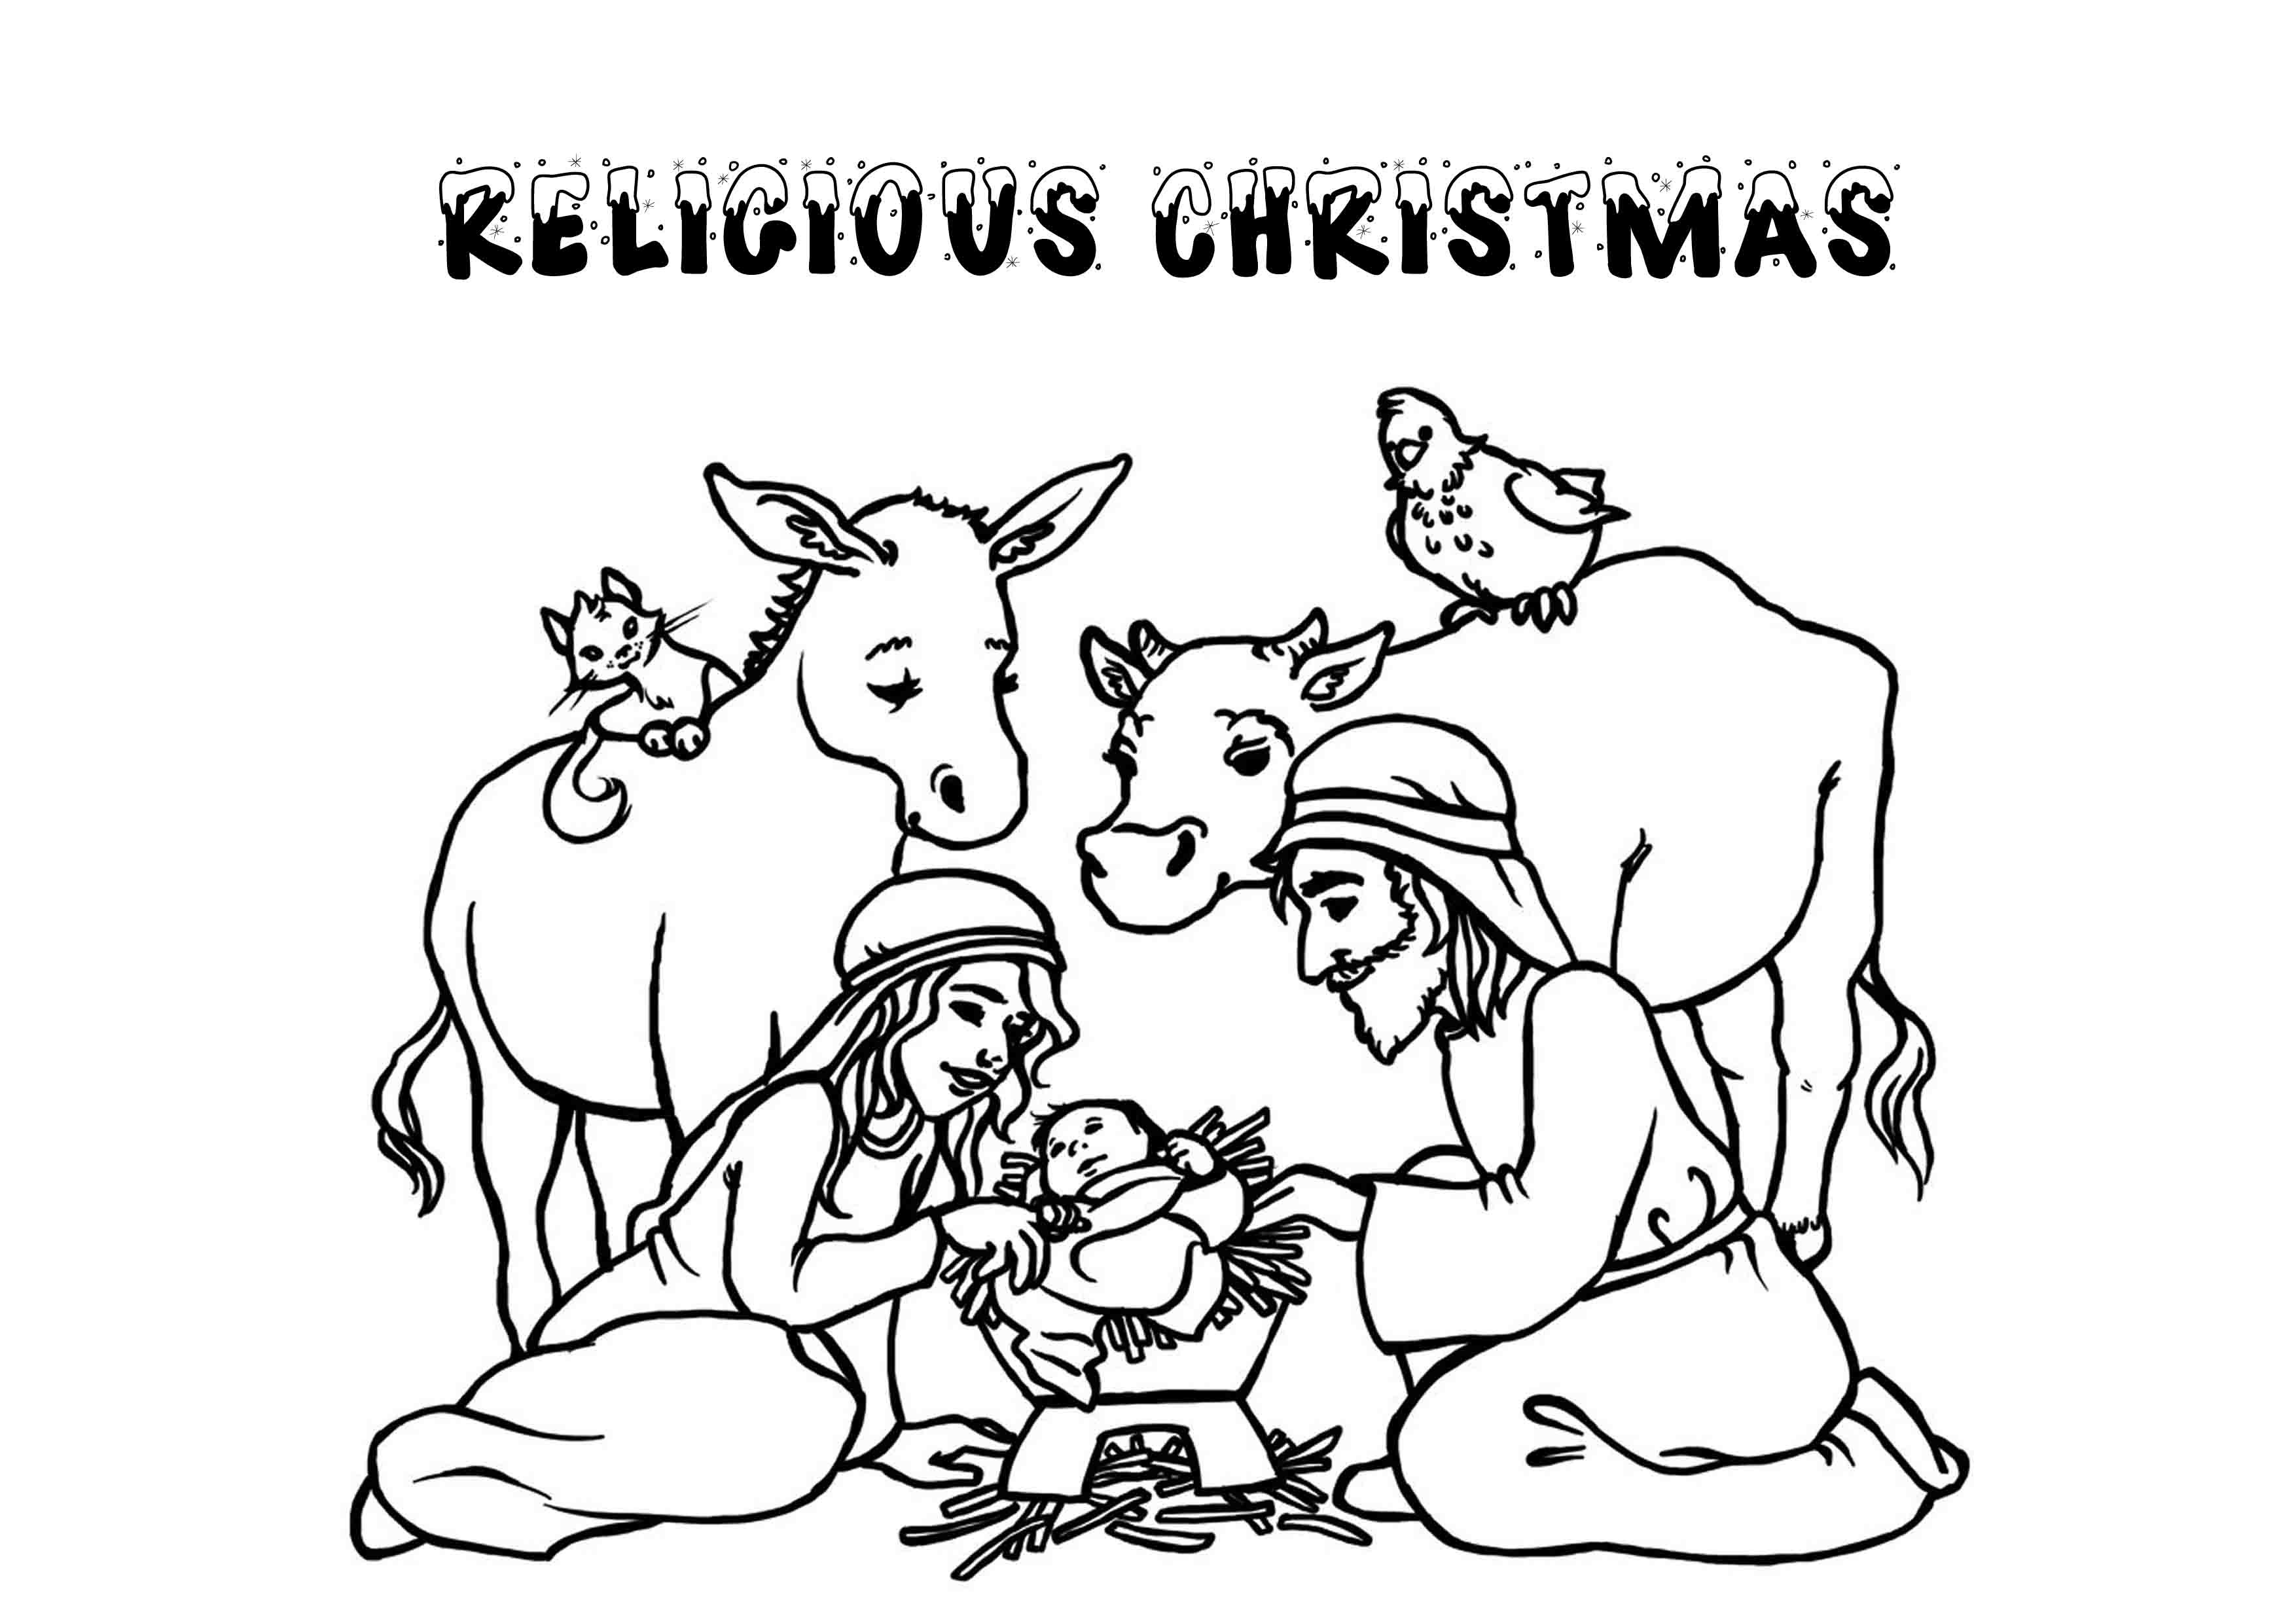 Best ideas about Christmas Christian Coloring Pages For Kids . Save or Pin Christmas Religious Printable Coloring Pages Coloring Home Now.